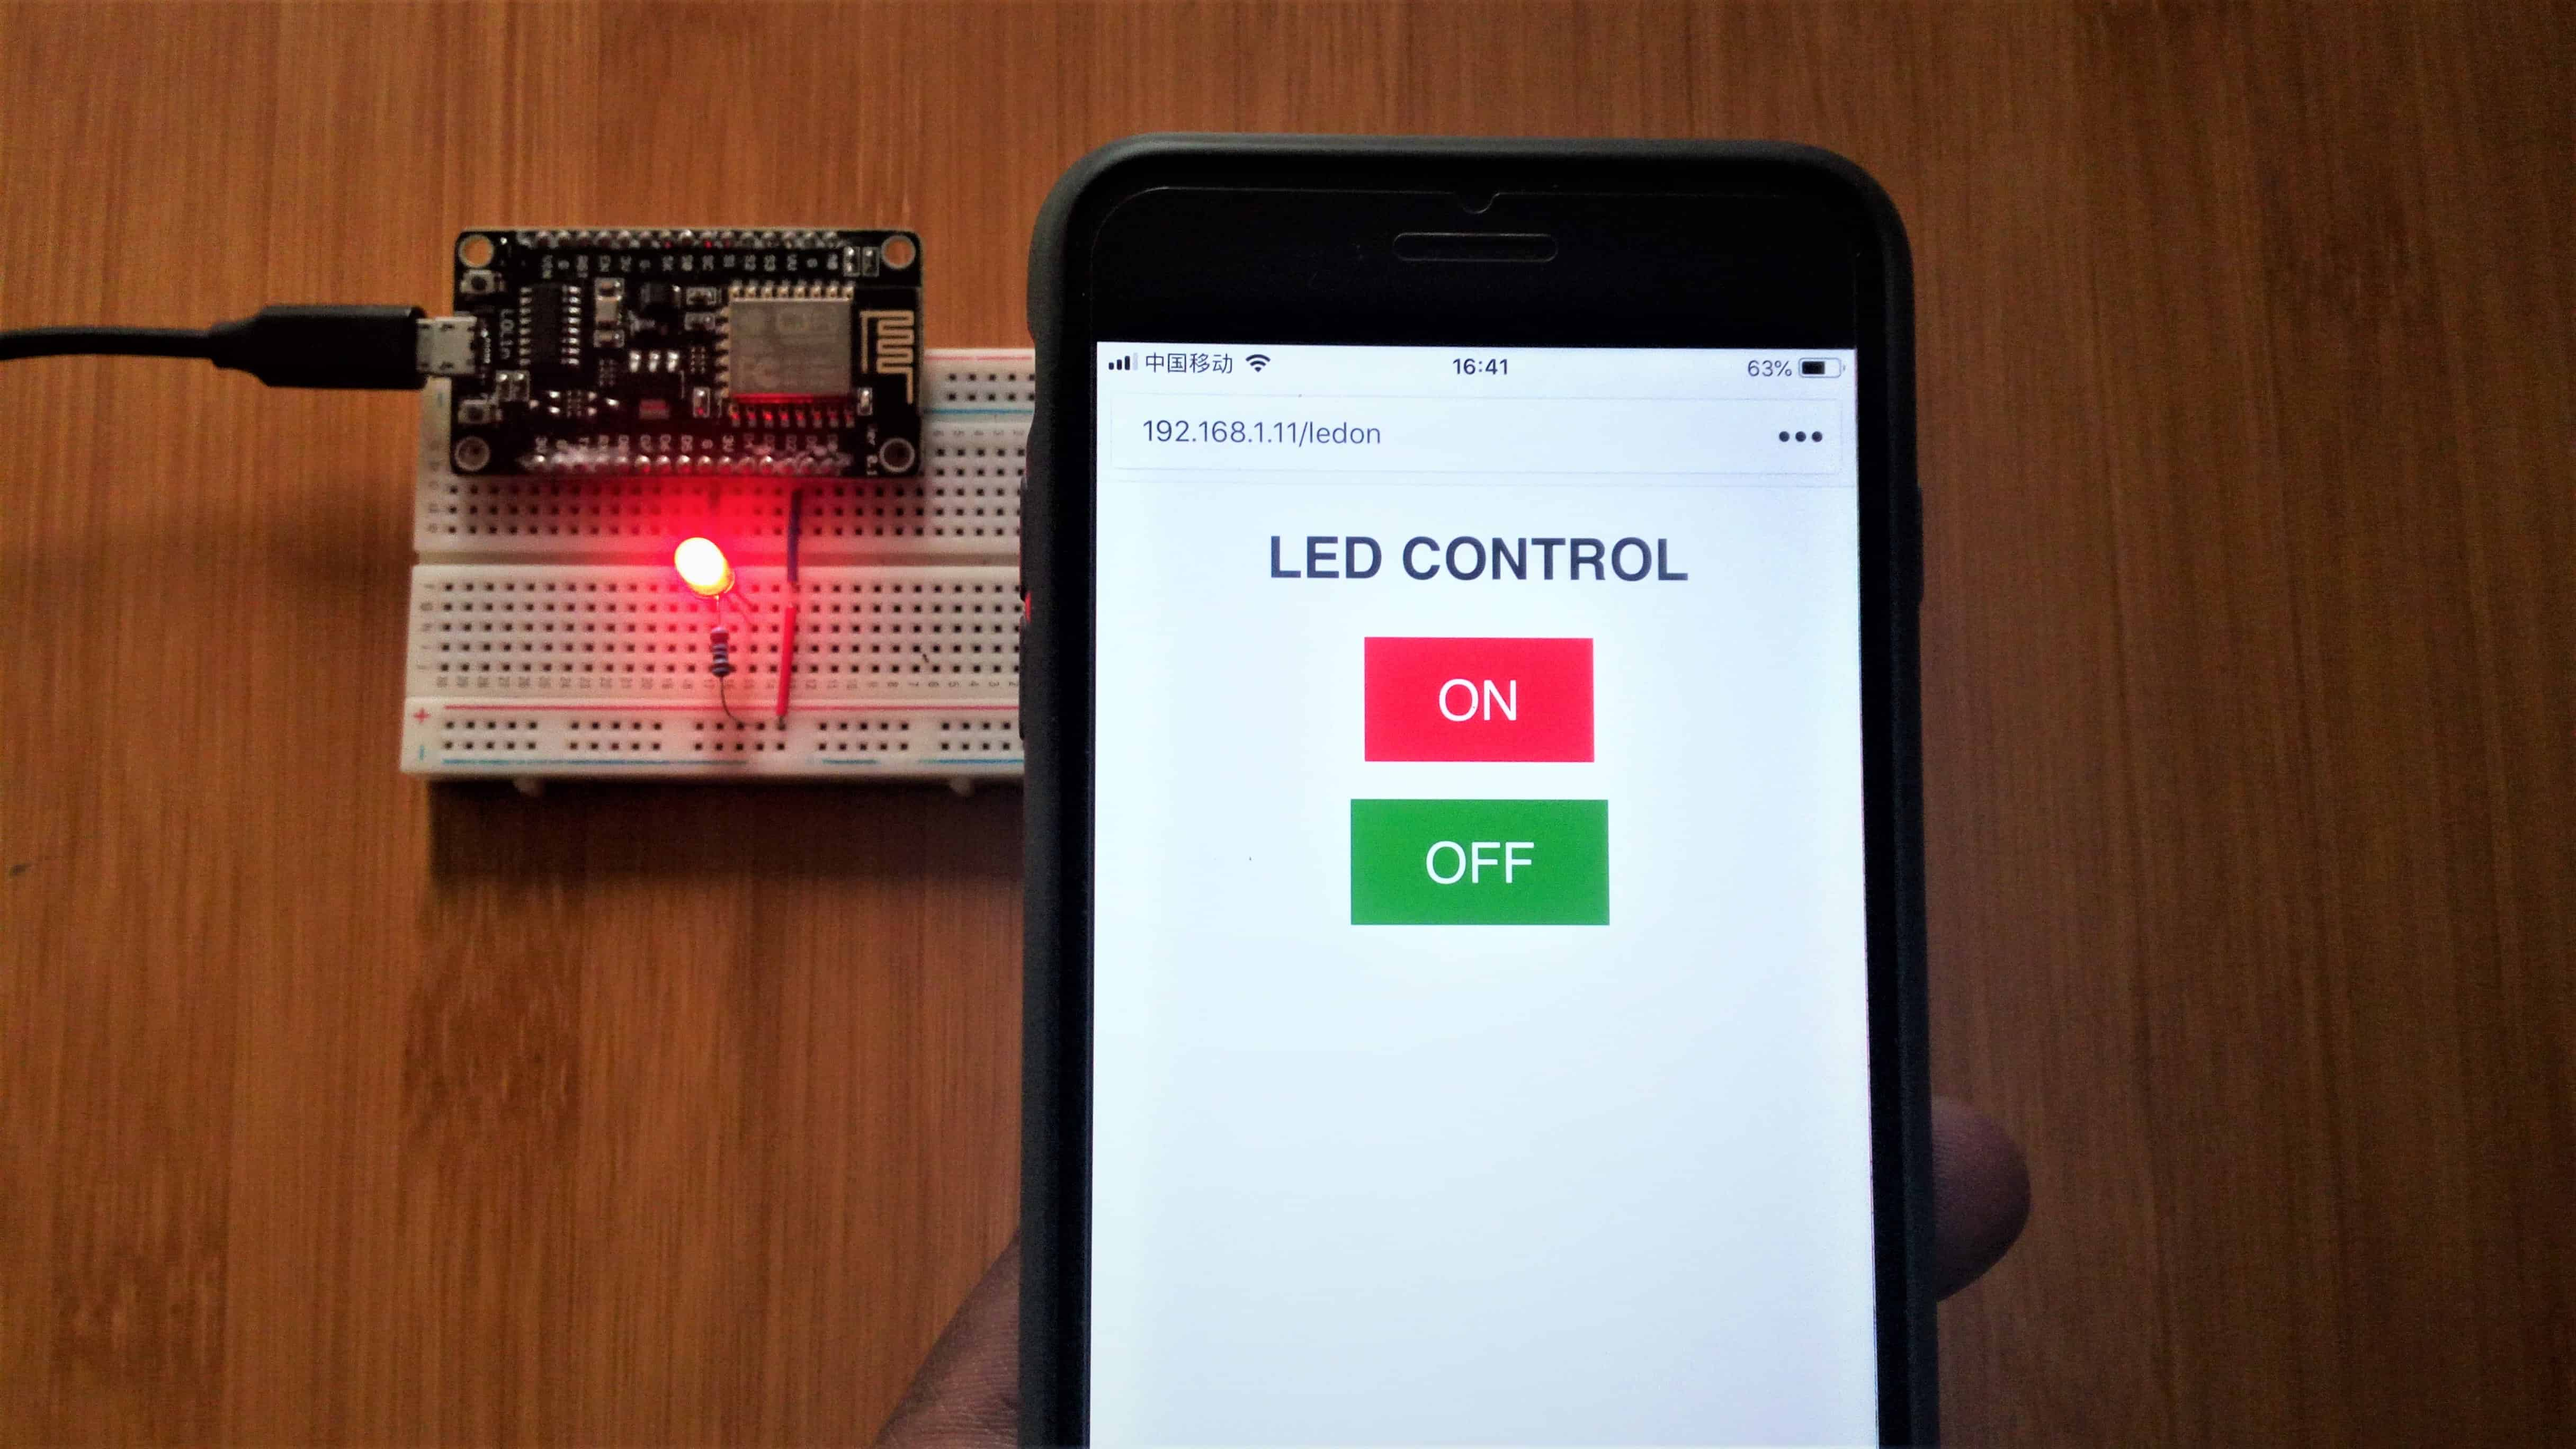 Nodemcu Webserver with Arduino IDE for controlling LEDs.